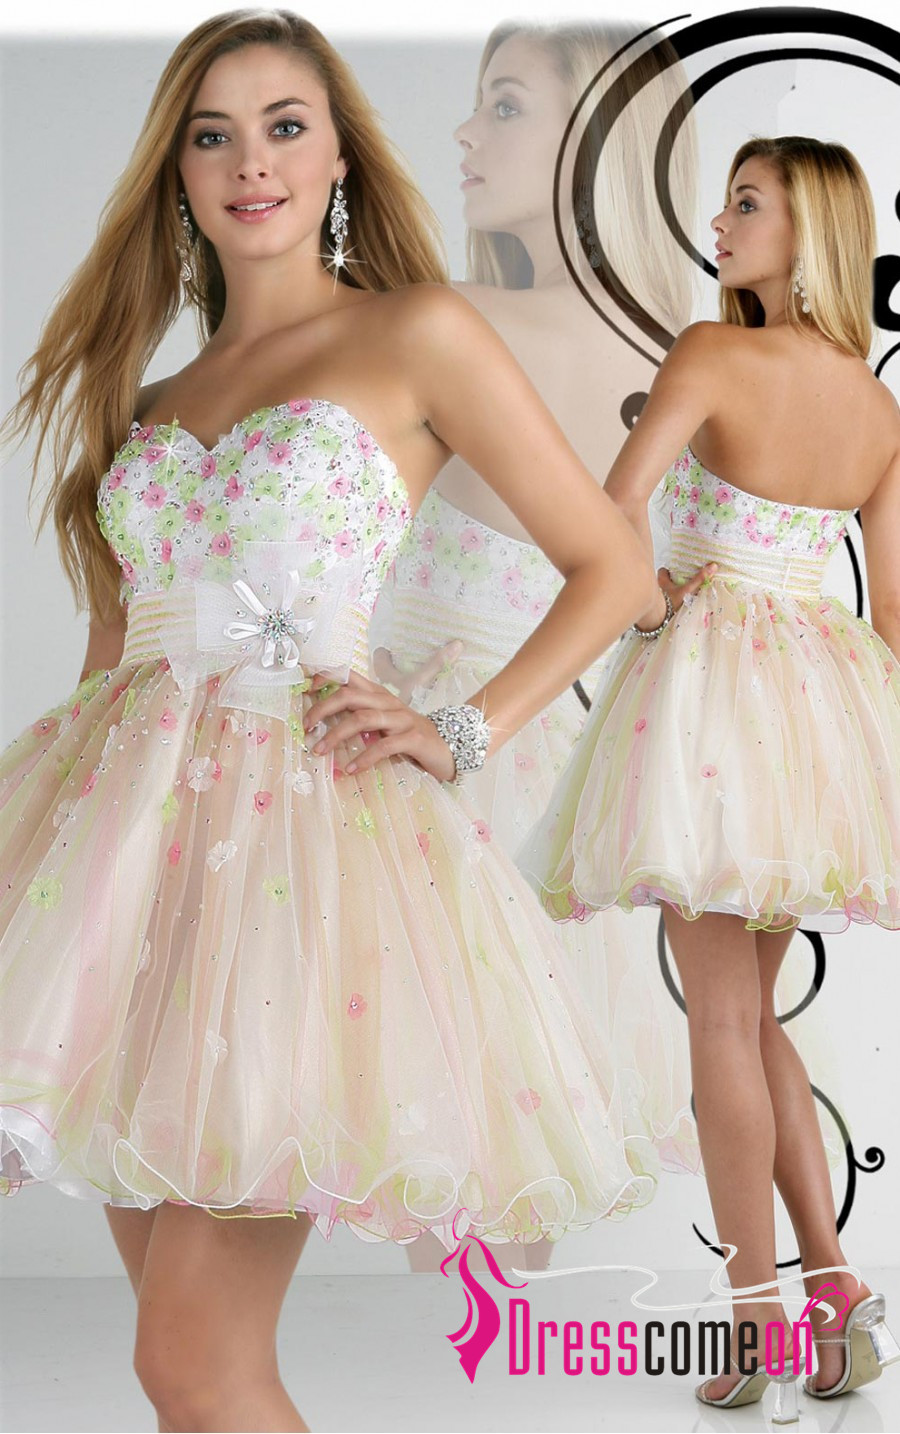 Multi Colours A-line Sweetheart Short/Mini Tulle Party Dress [PTD0023] - $118.65 - Dresscomeon